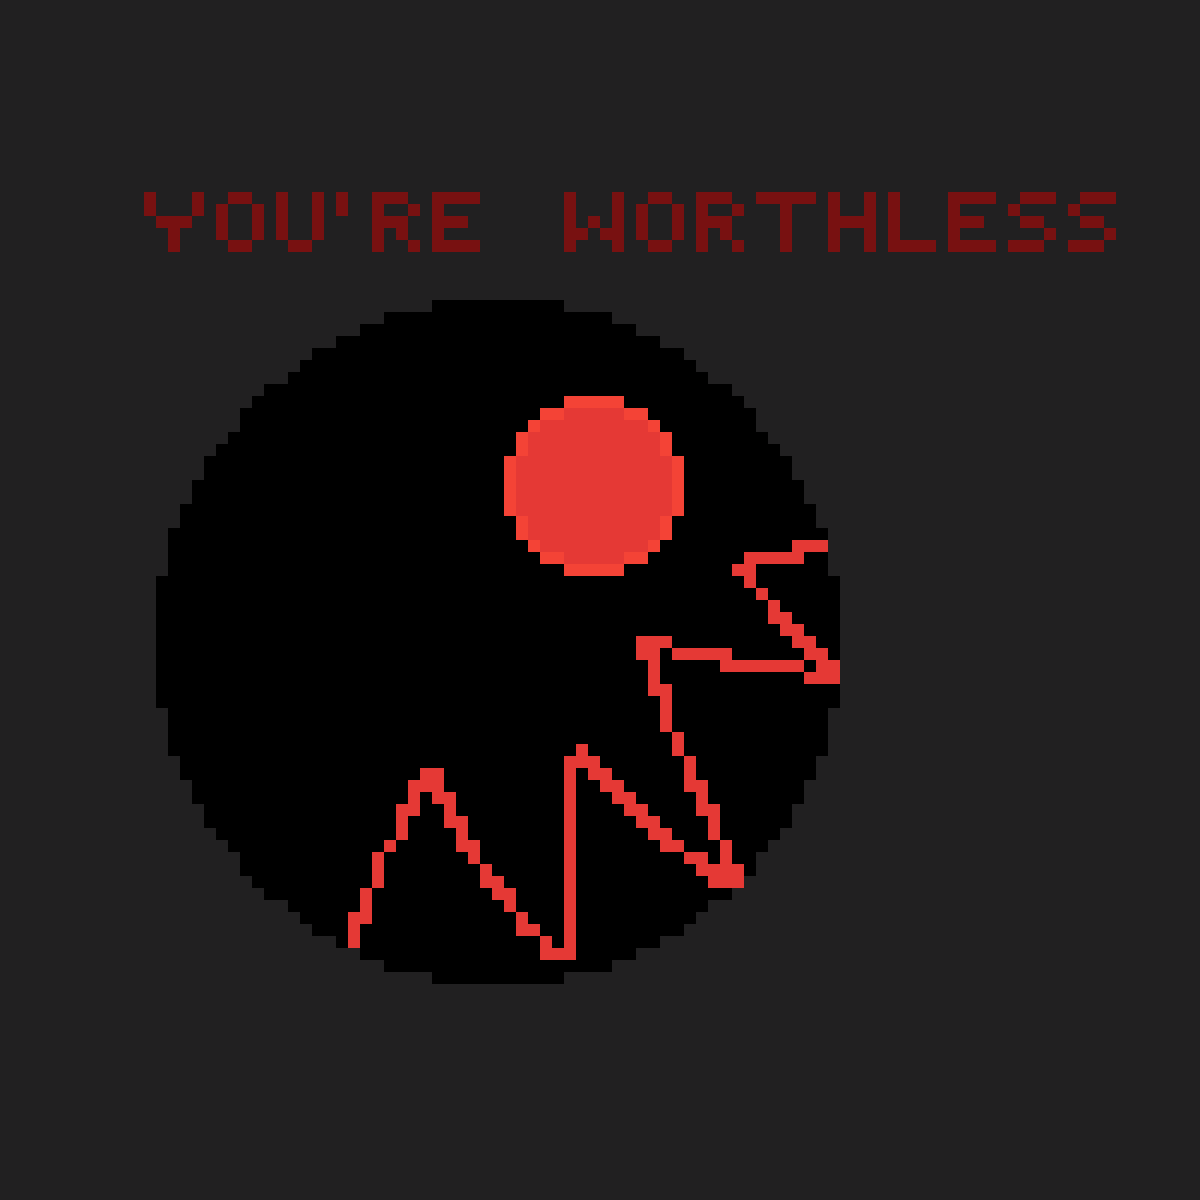 You're worthless by Blackcreeper